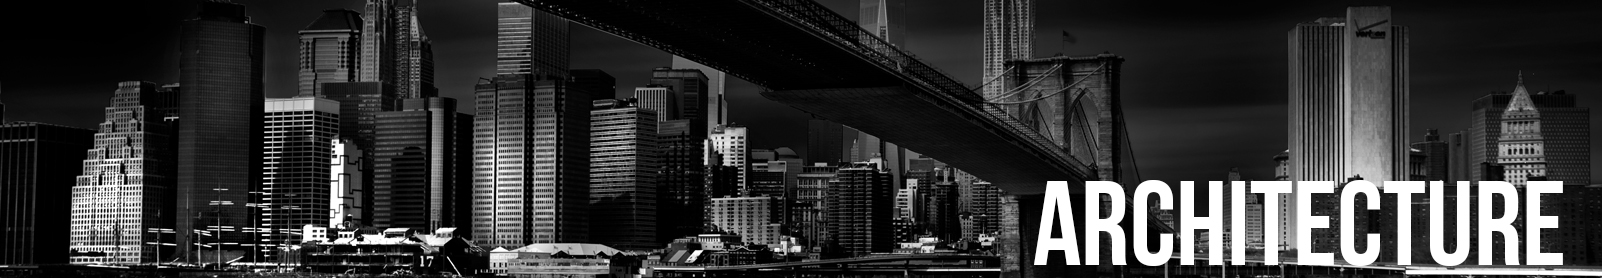 architecture-small-banner.jpg